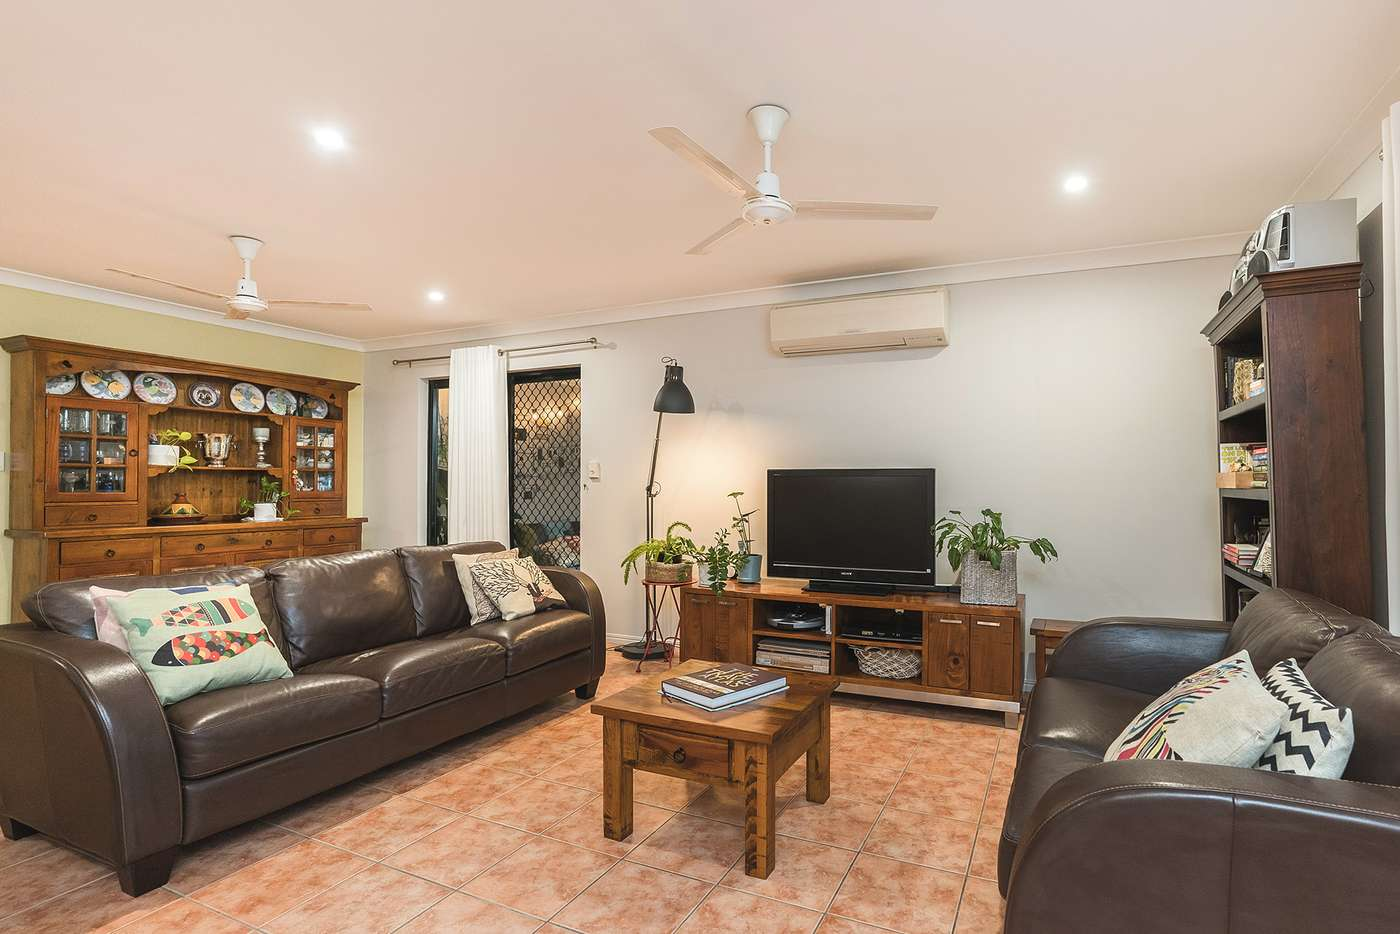 Sixth view of Homely house listing, 5 Brookside Avenue, Norman Gardens QLD 4701